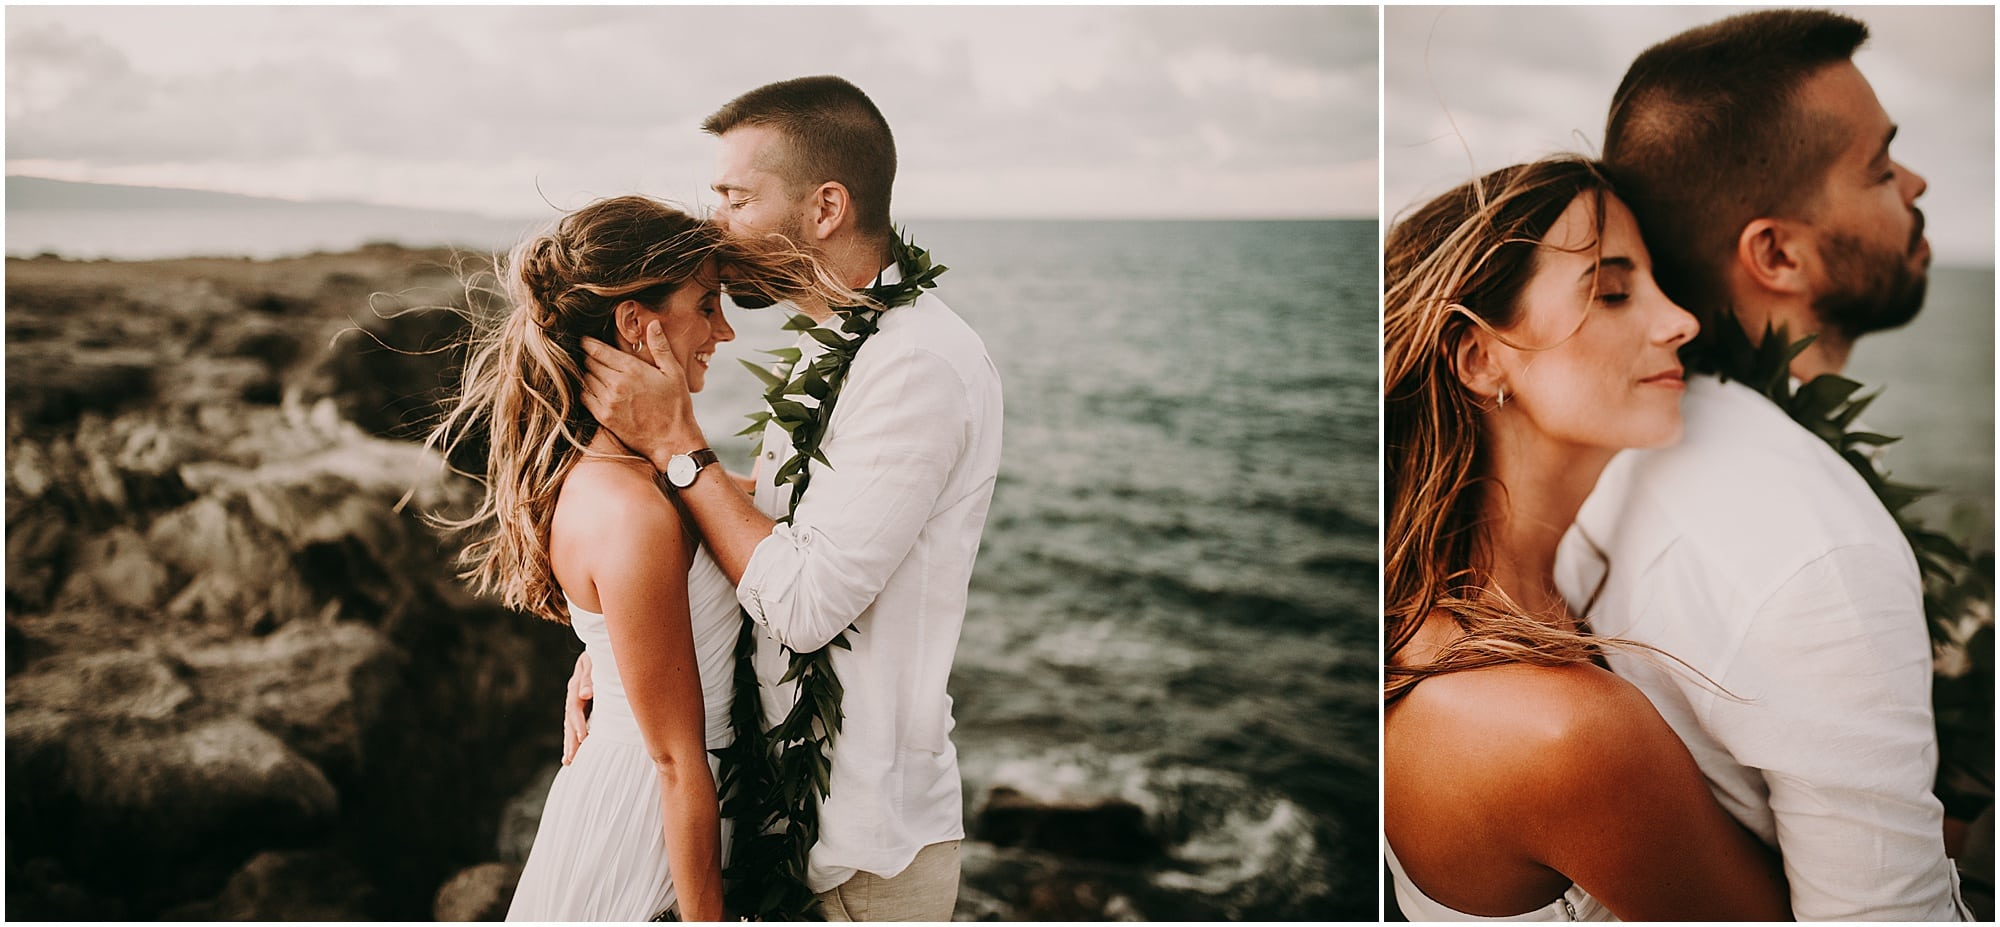 Maui wedding photographer43